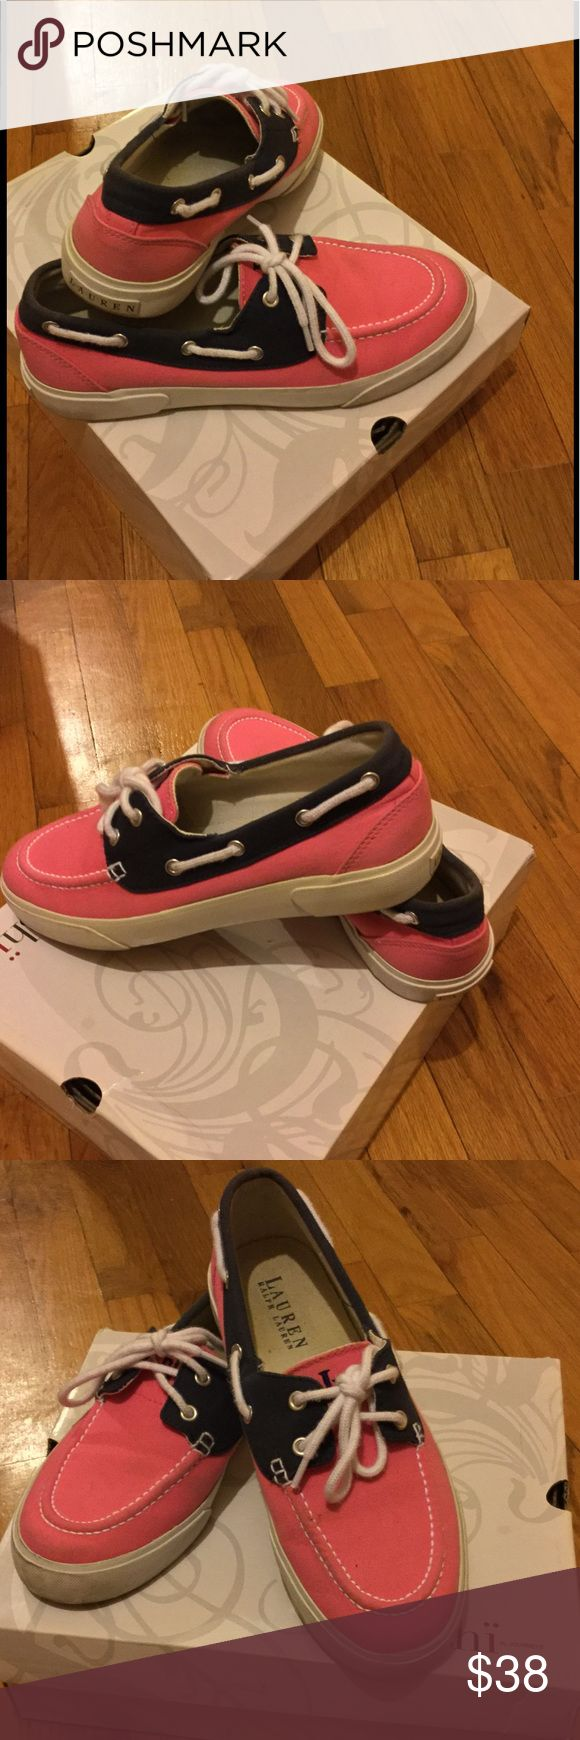 Ralph Lauren boat shoes Hardly worn, Women's boat shoes! Very comfortable and stylish. Ralph Lauren Shoes Flats & Loafers